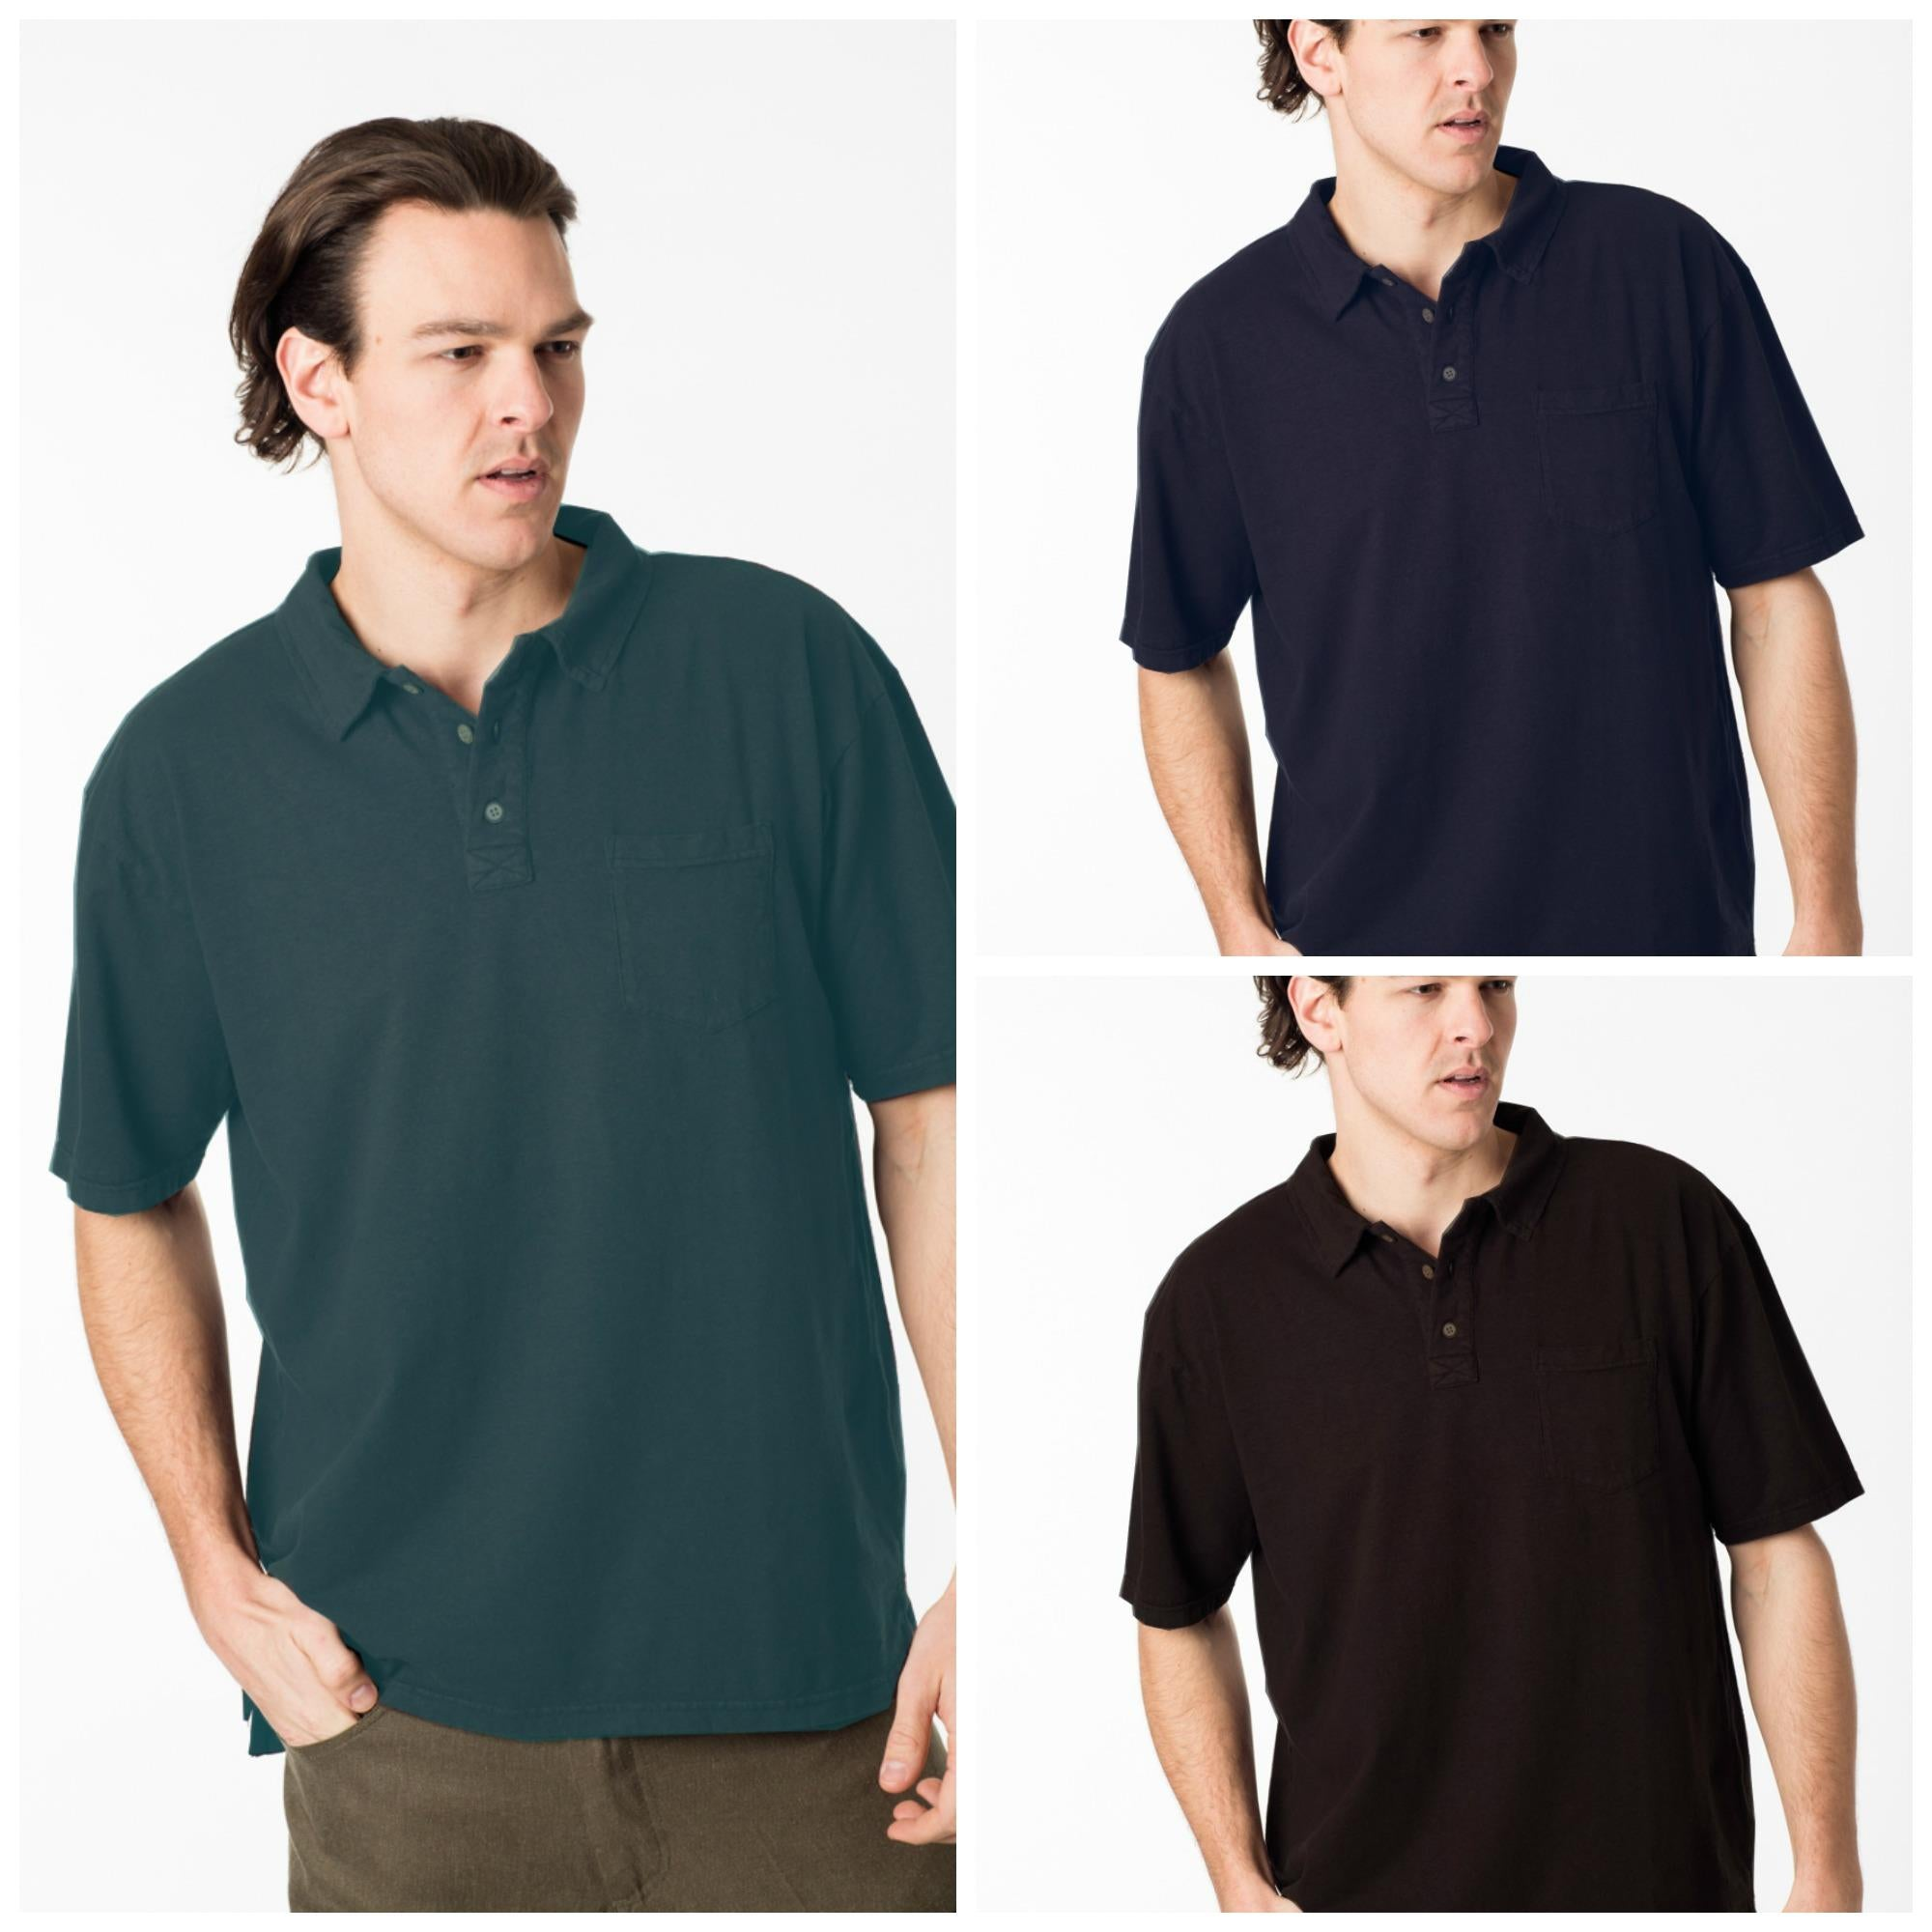 H&C Golf Shirt with pocket